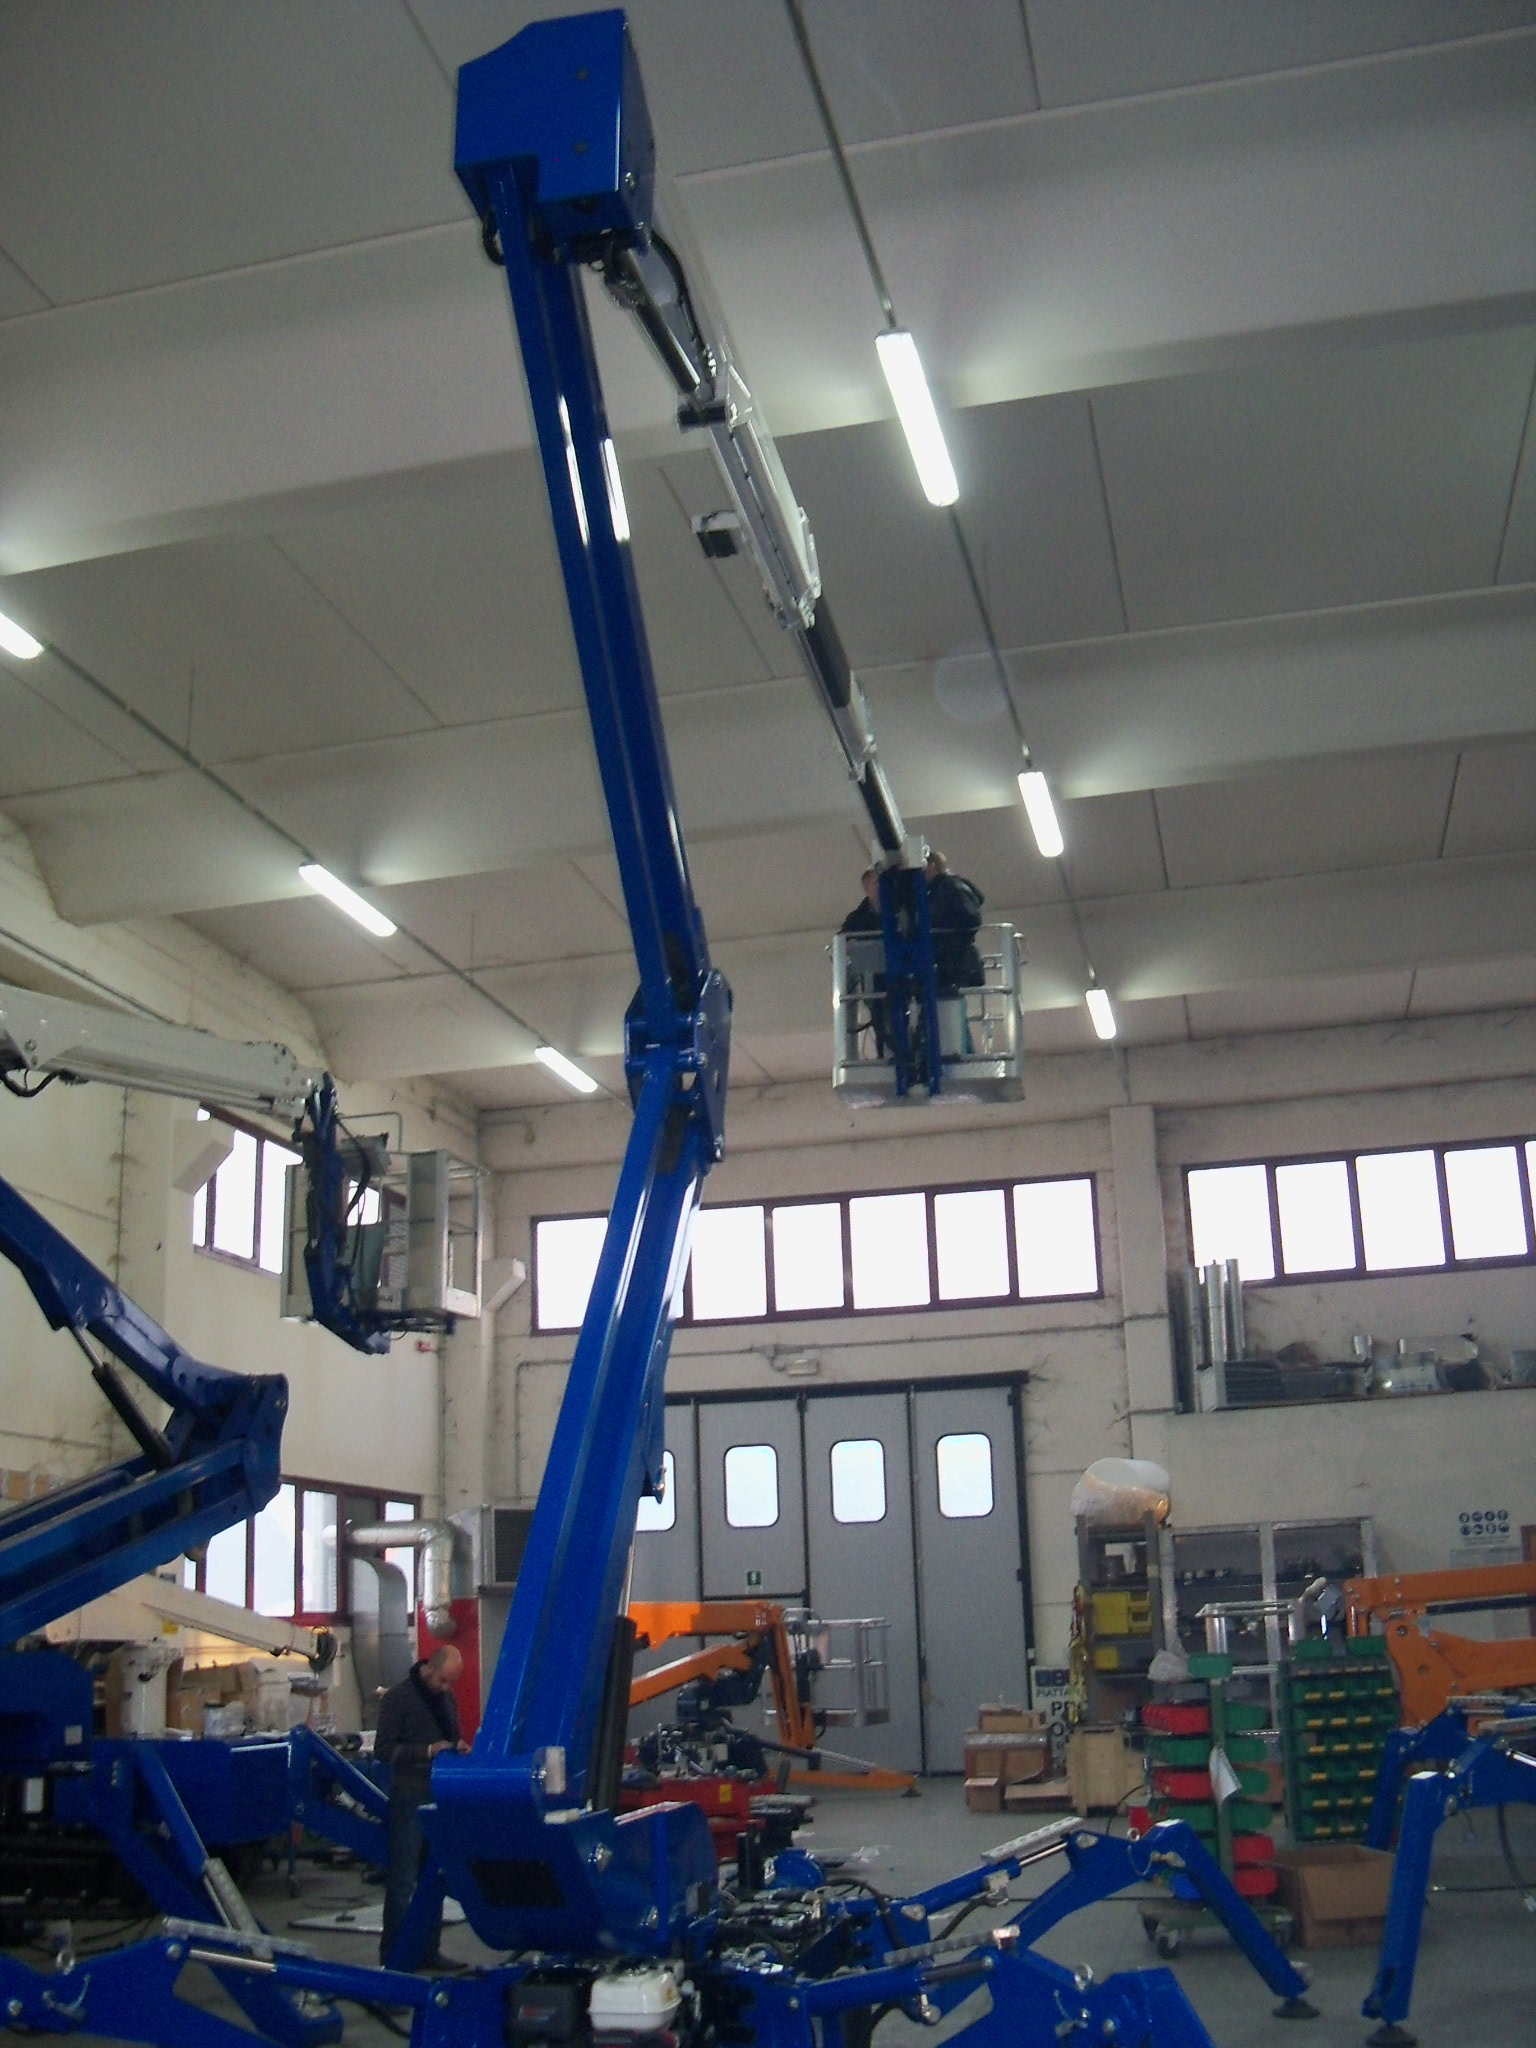 Reachmaster Aerial Lifts Bluelift B72 Compact Aerial